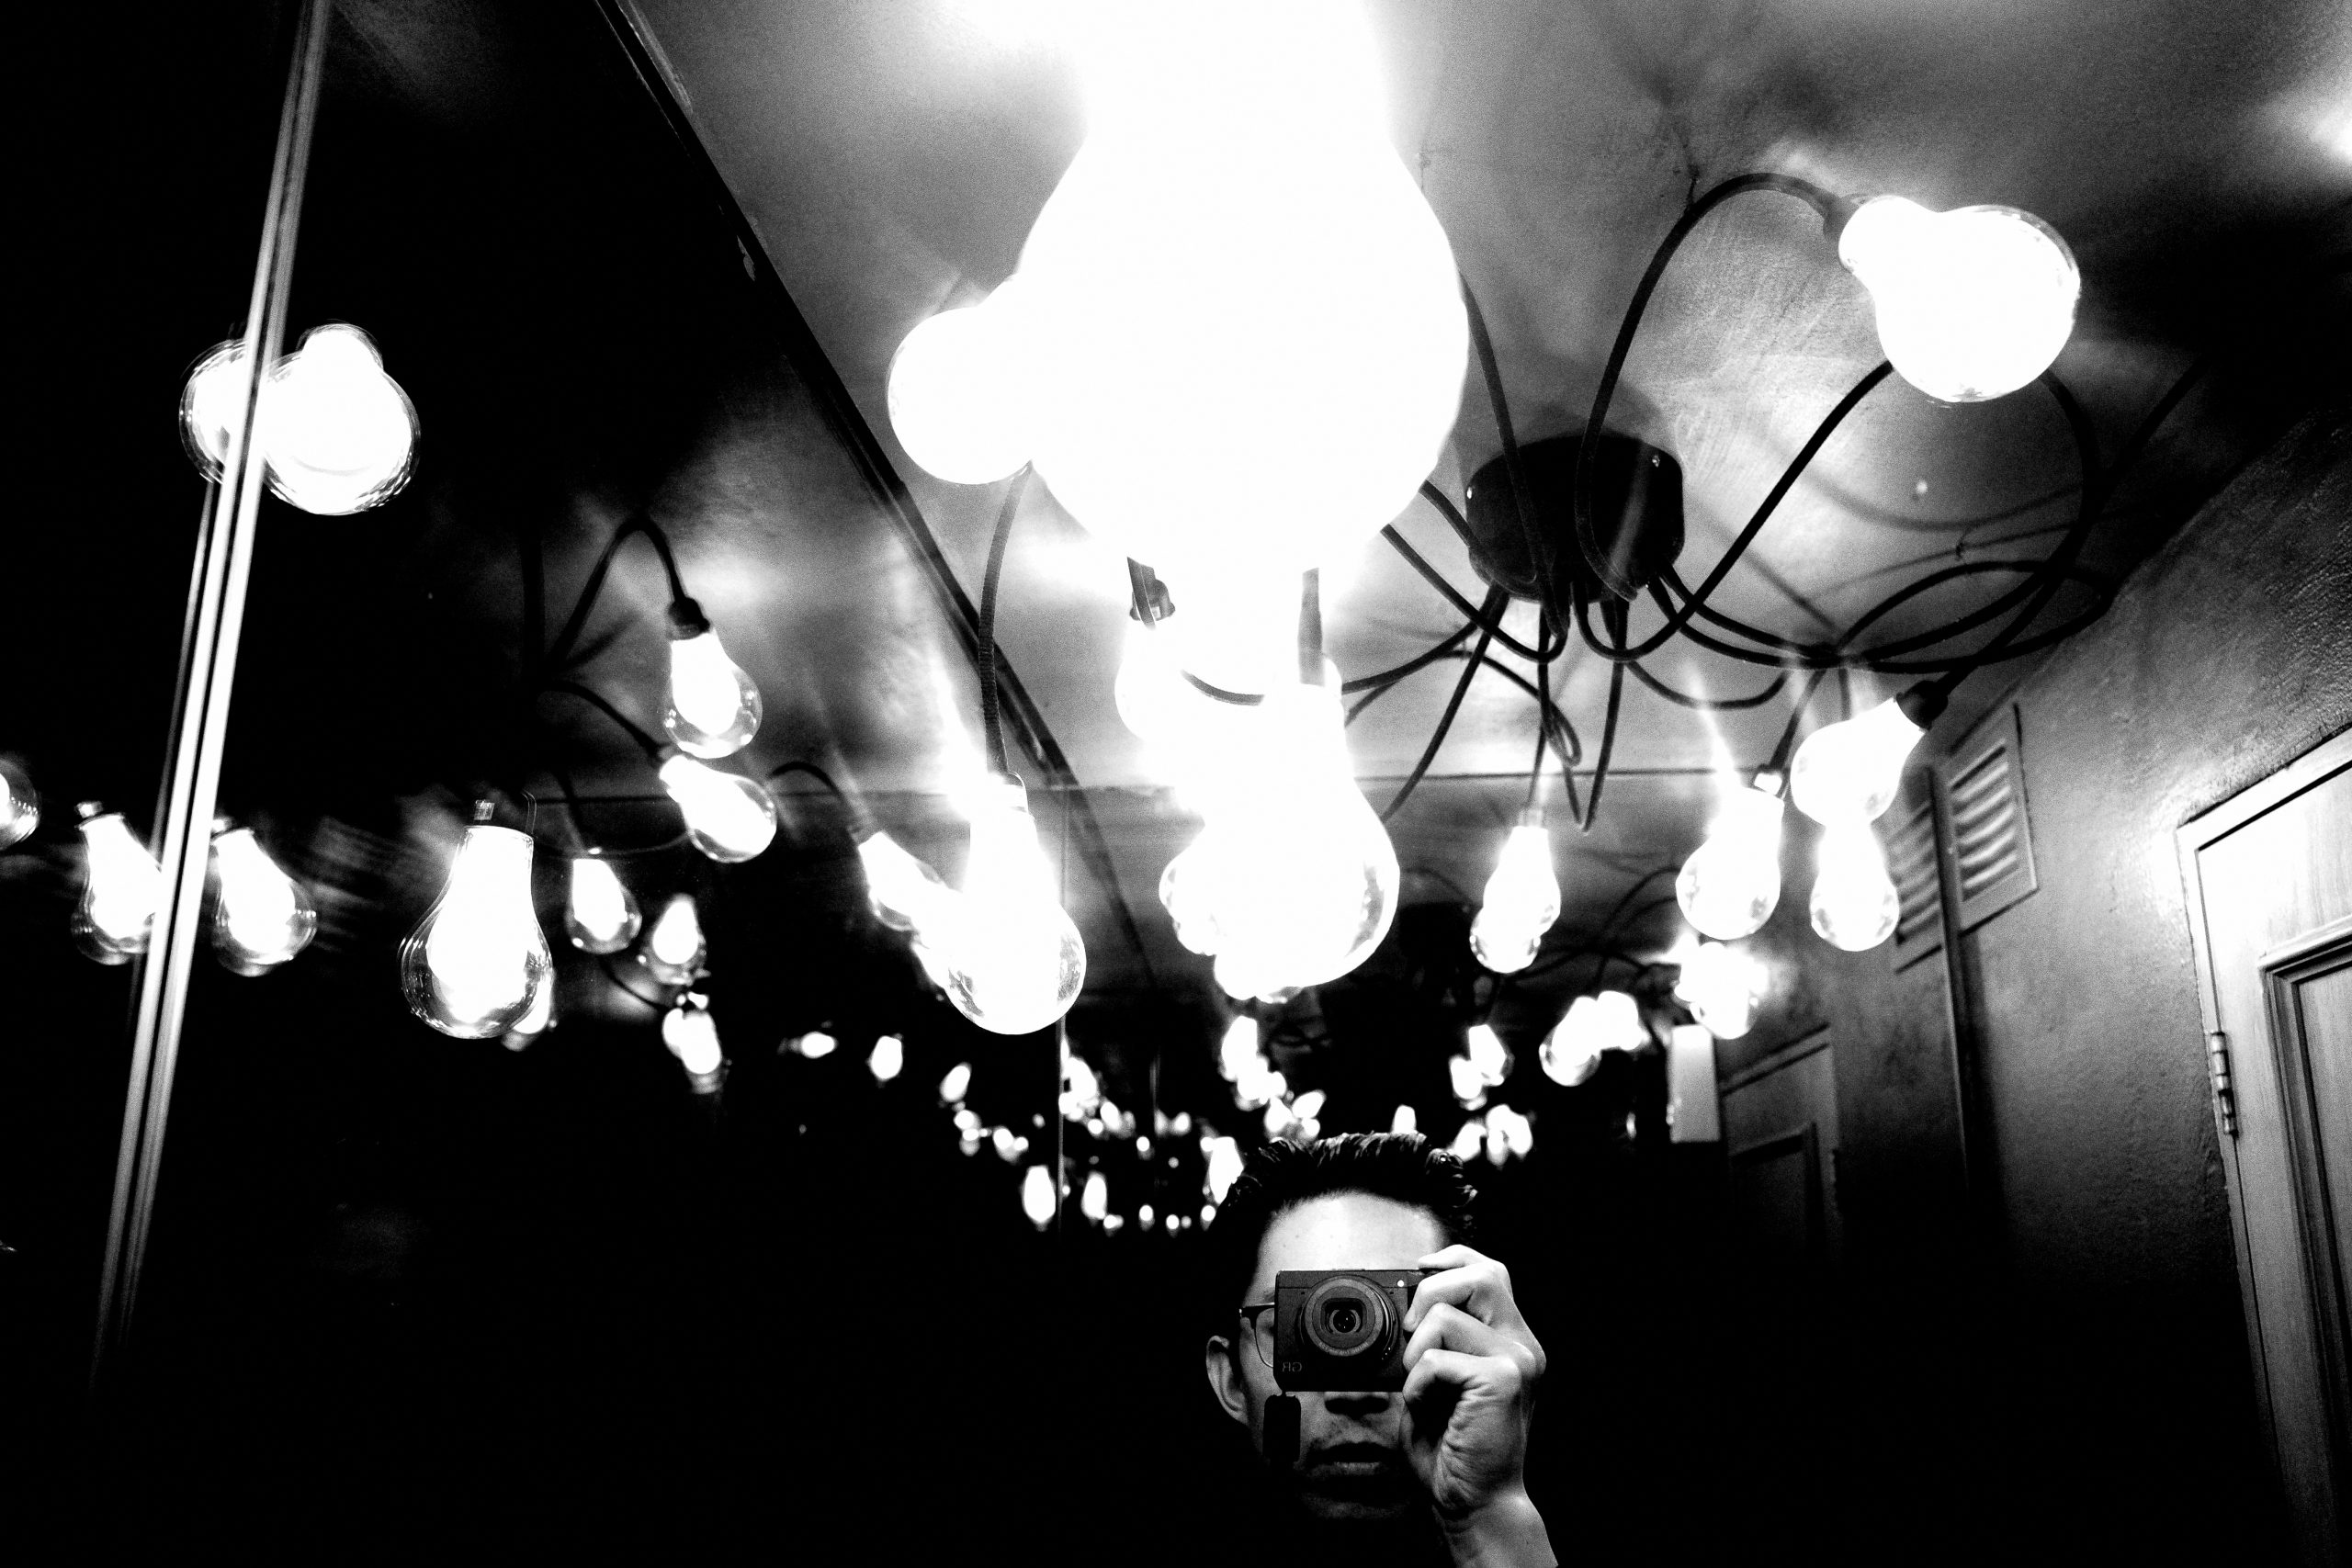 Light bulbs selfie ERIC KIM